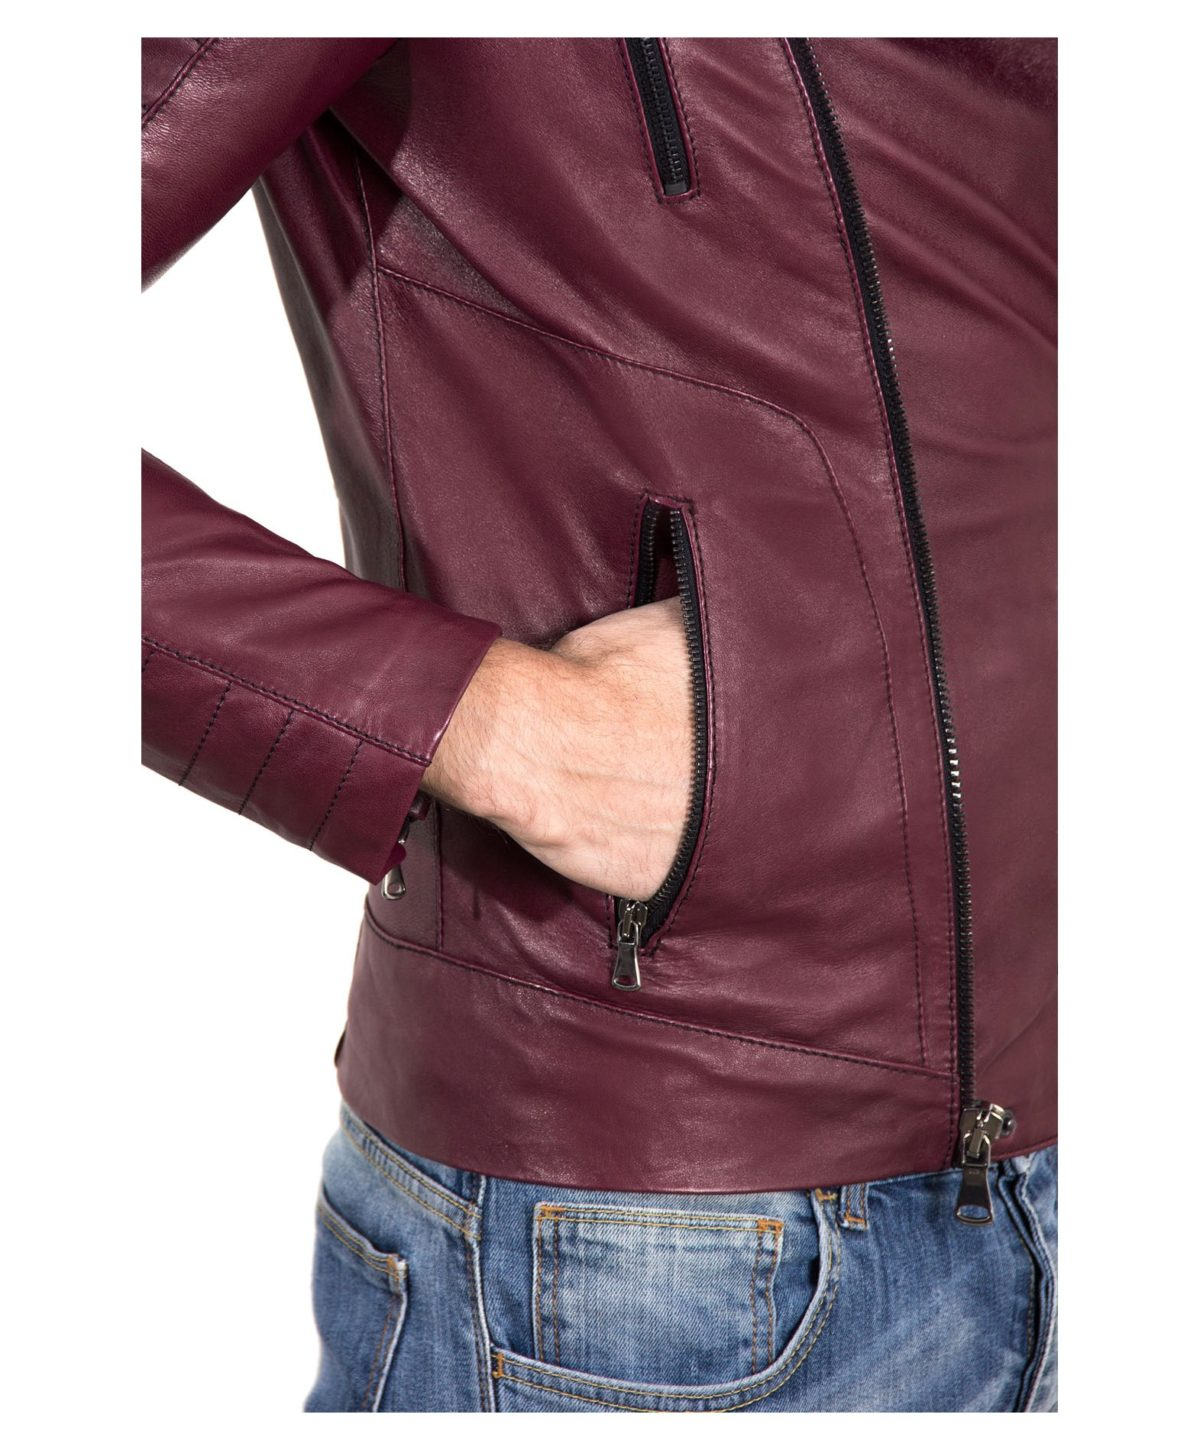 kevin-red-purple-color-nappa-lamb-leather-biker-perfecto-jacket-smooth-effect (2)